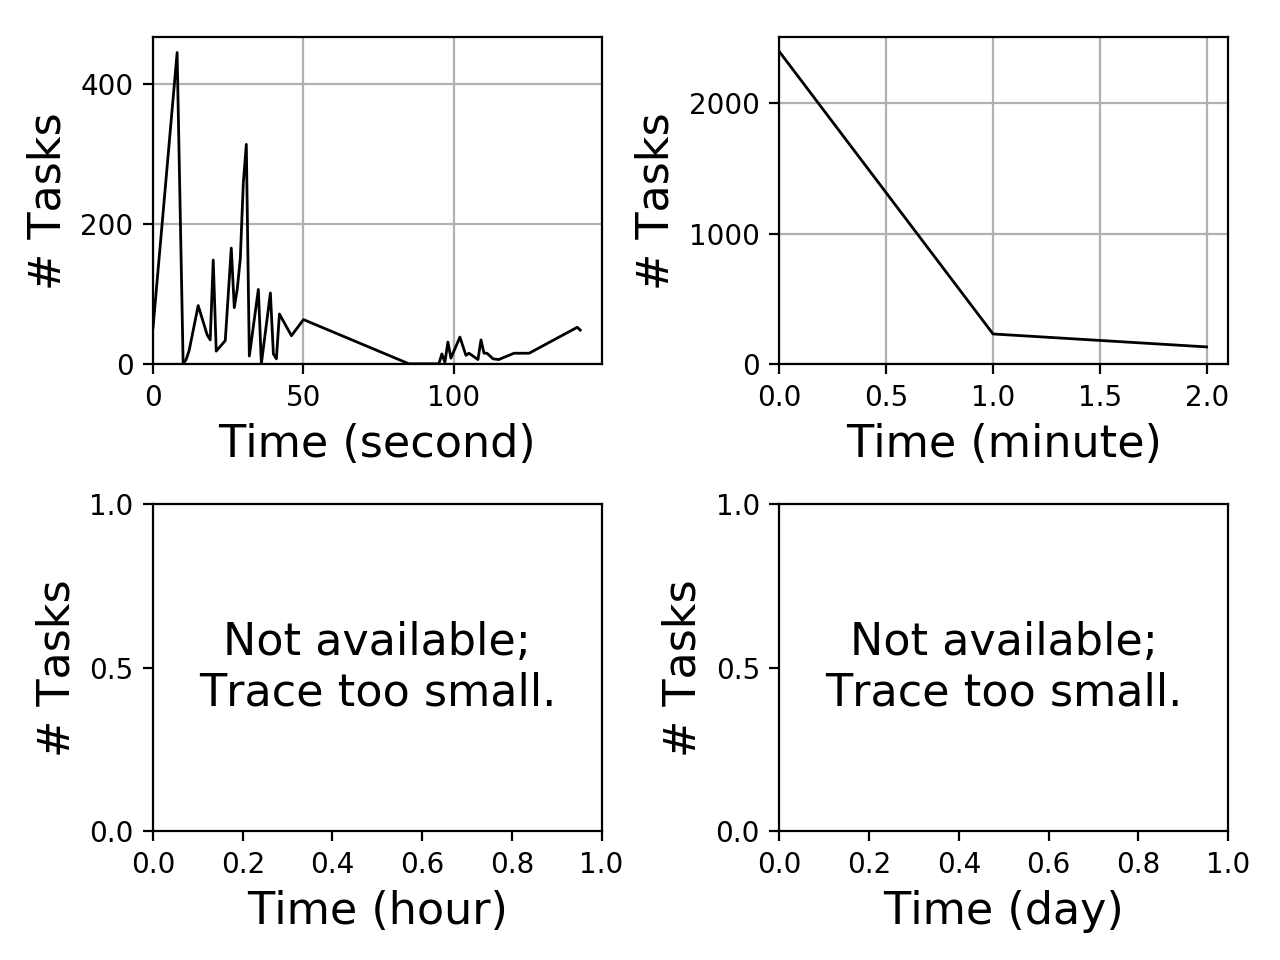 Task arrival graph for the Pegasus_P7 trace.